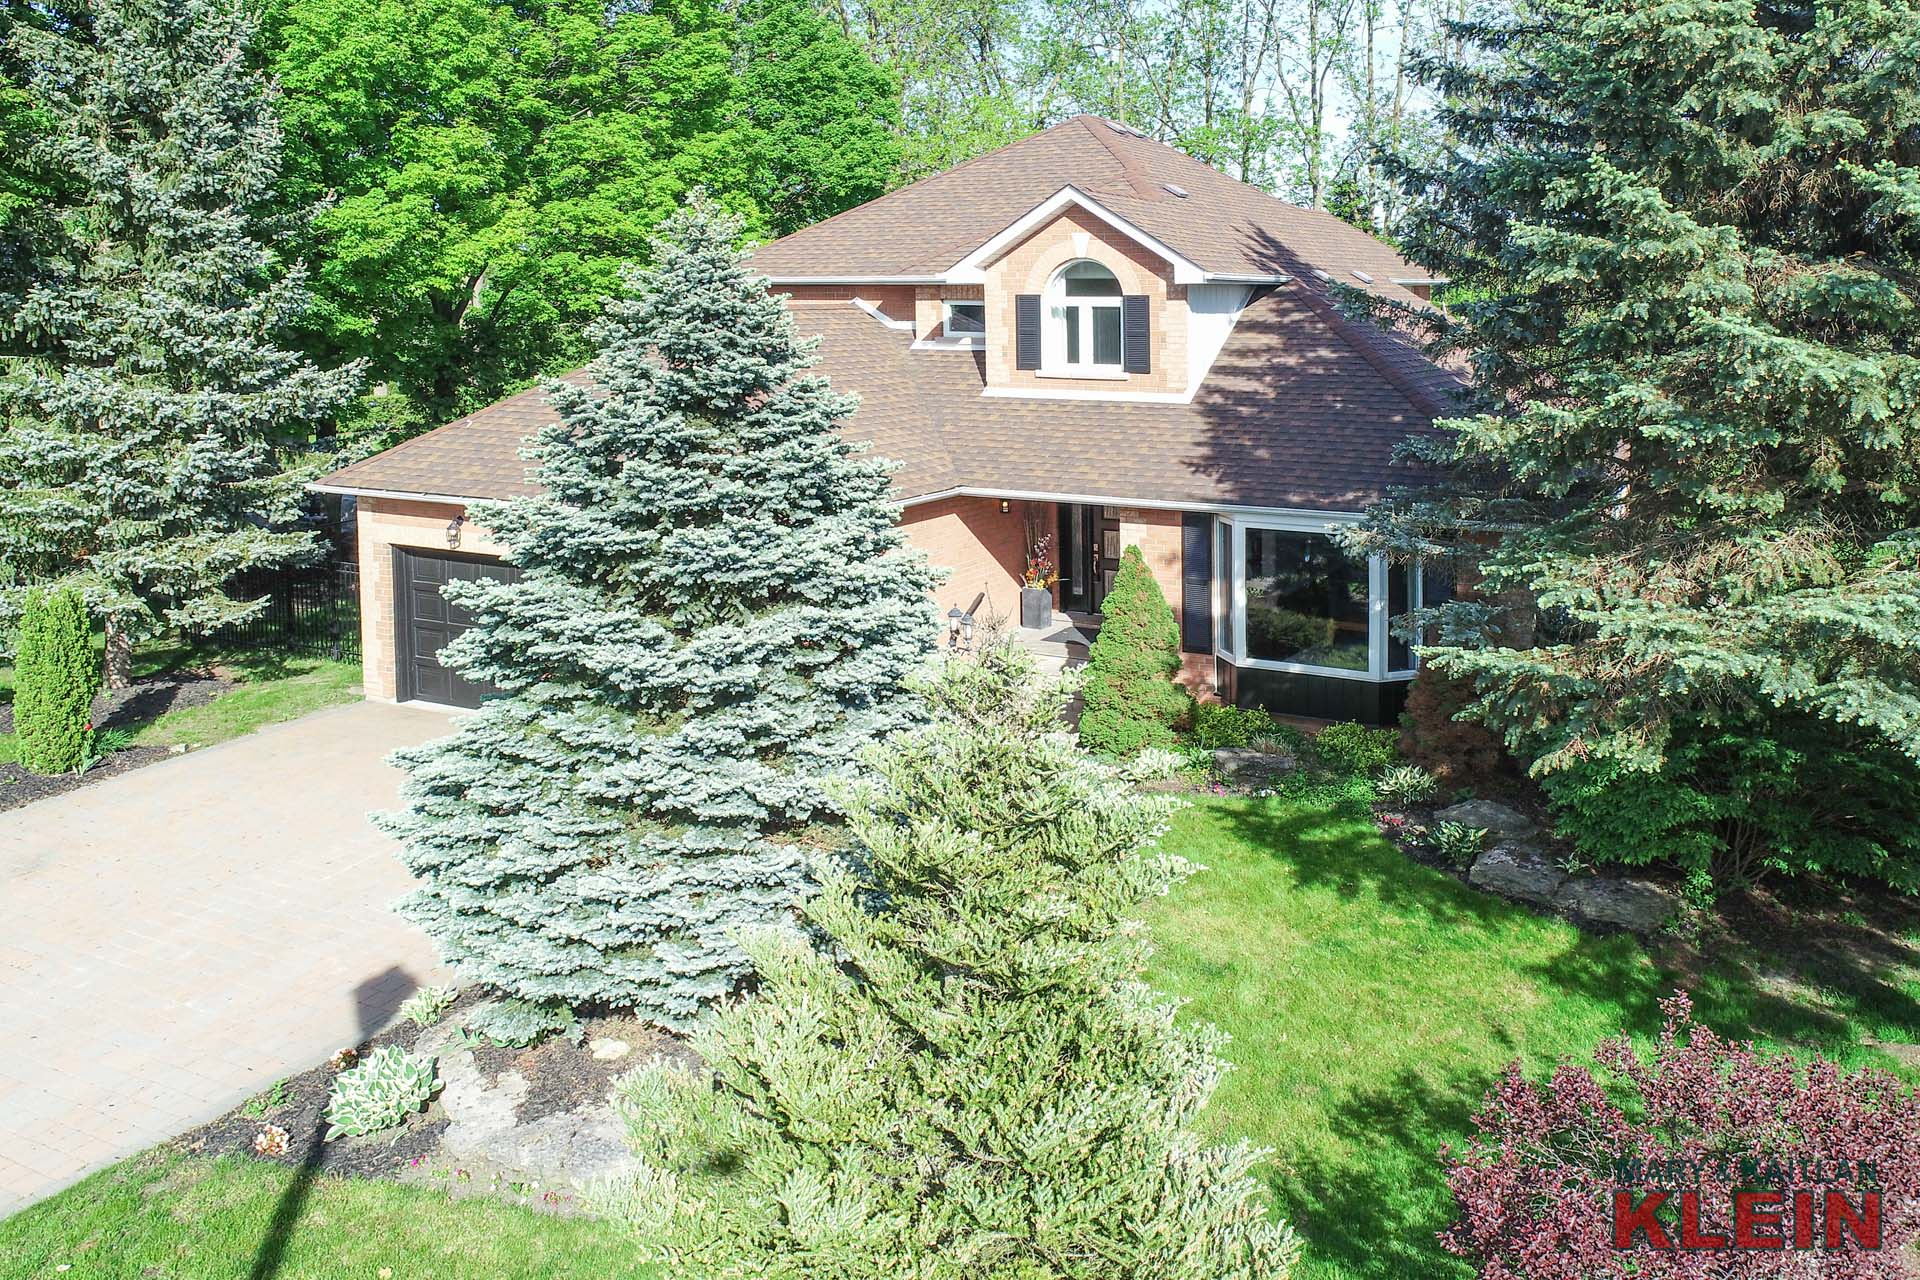 Caledon East 4 Bedroom Home for Sale